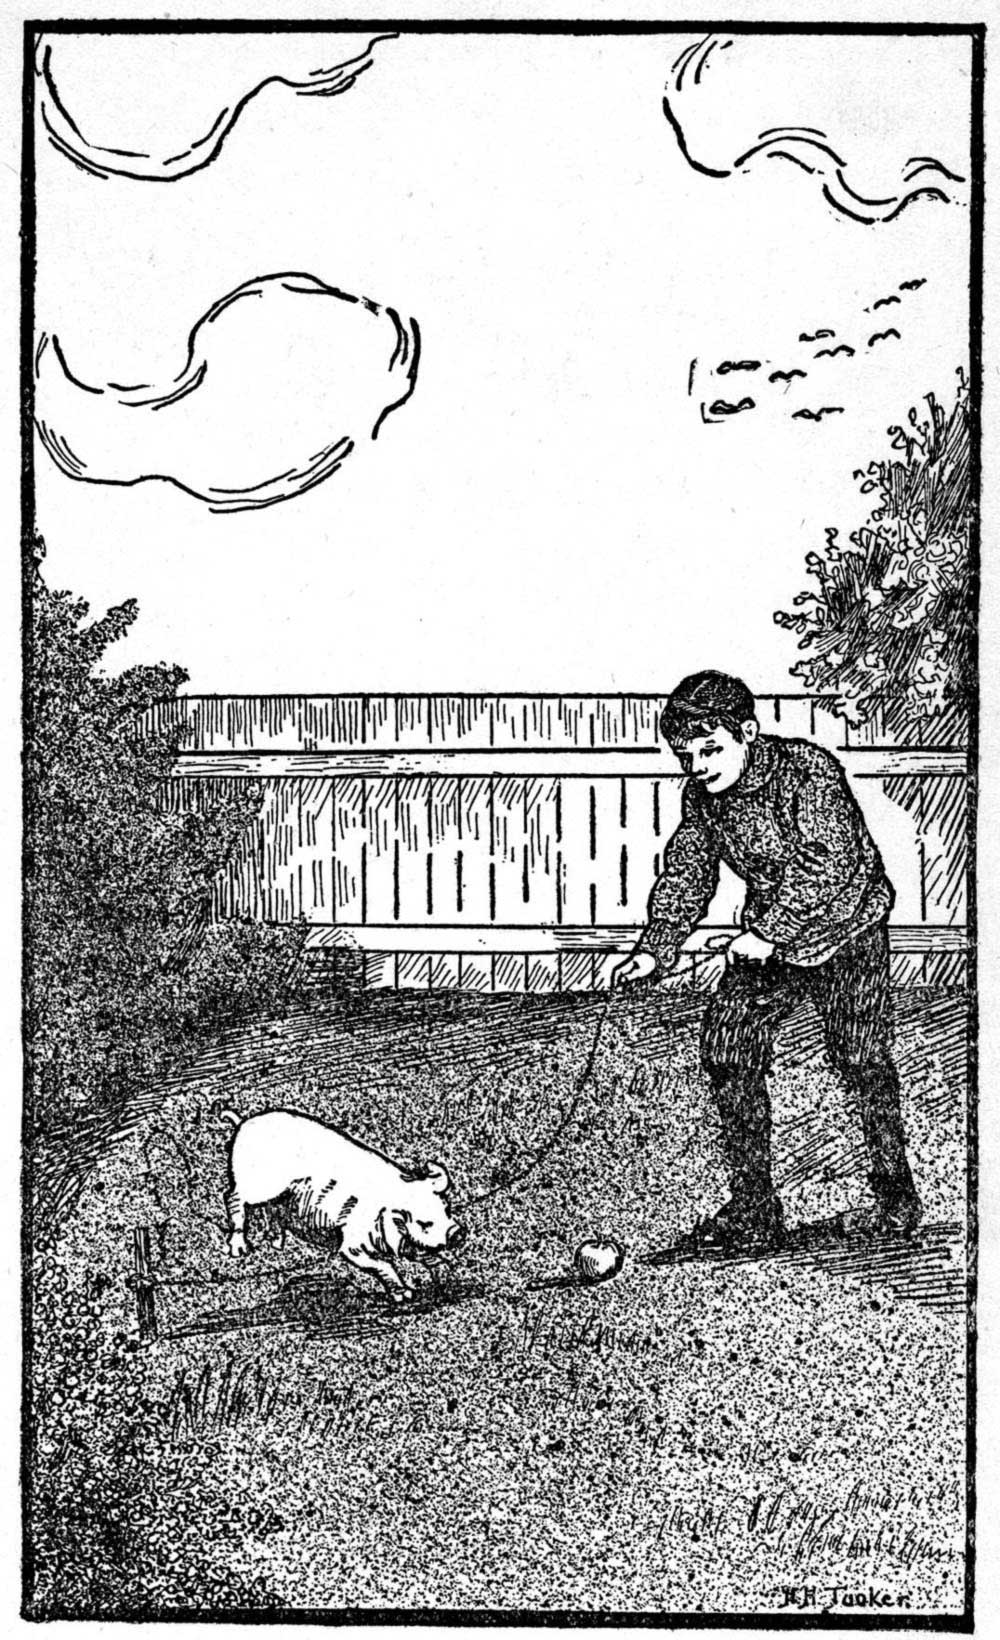 Public domain images 6 line drawing of a boy with training a pig free public domain image 6 line drawing of a boy with training a pig to jump baanklon Choice Image